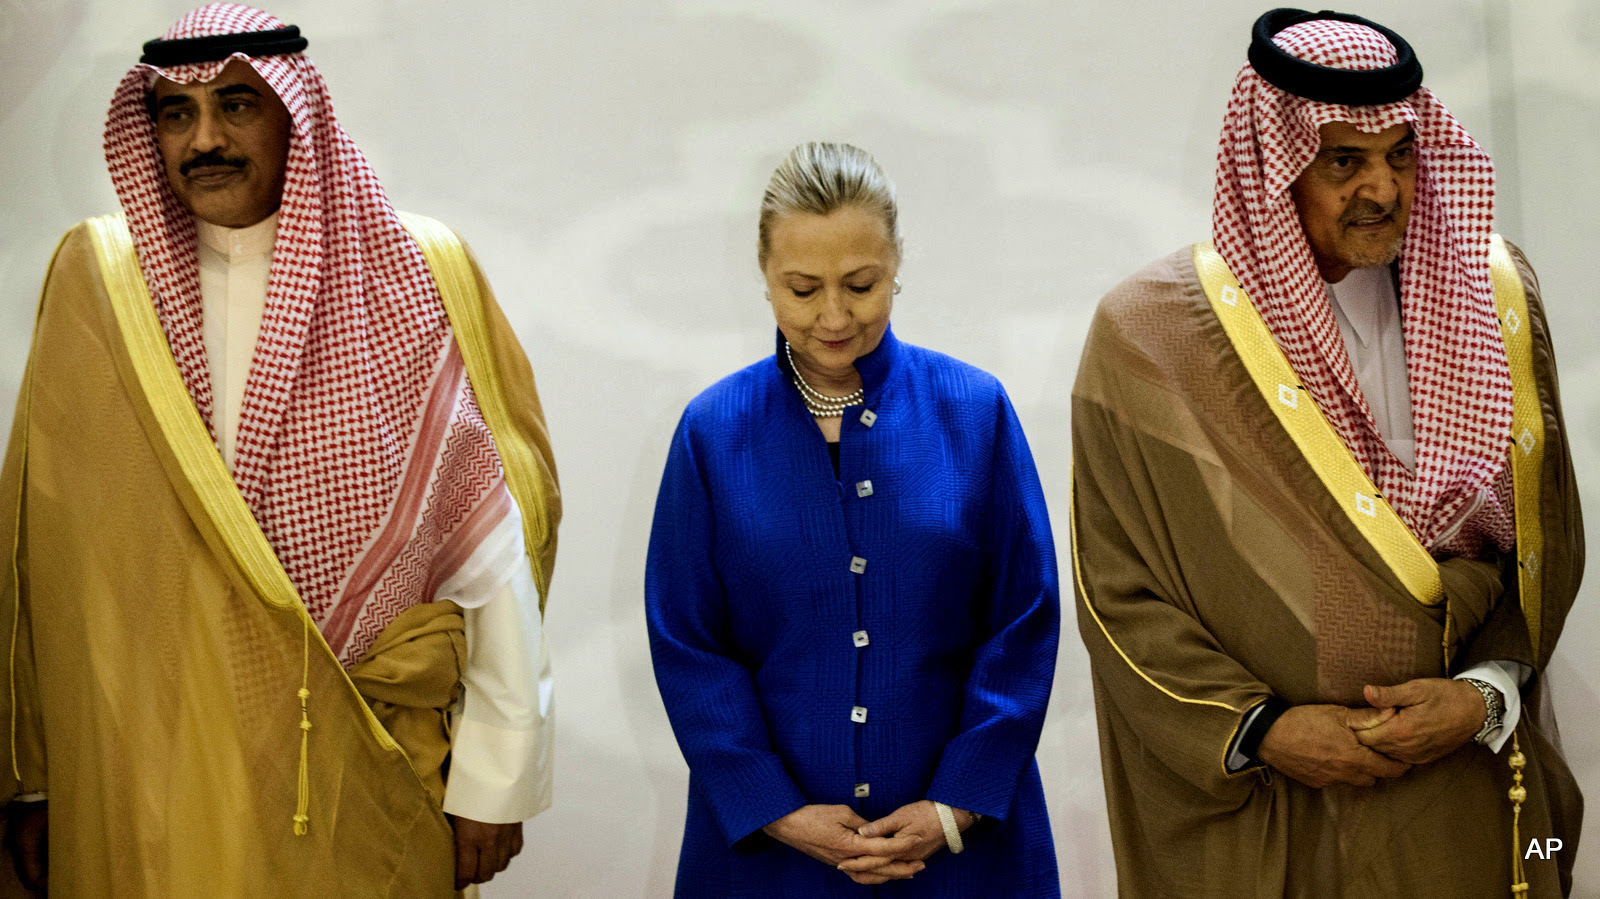 Saudi Foreign Minister Prince Saud Al-Faisal, right, U.S. Secretary of State Hillary Clinton, center, and Kuwaiti Foreign Minister Sheikh Sabah Khaled al-Hamad Al-Sabah, left, stand together prior to a group photo